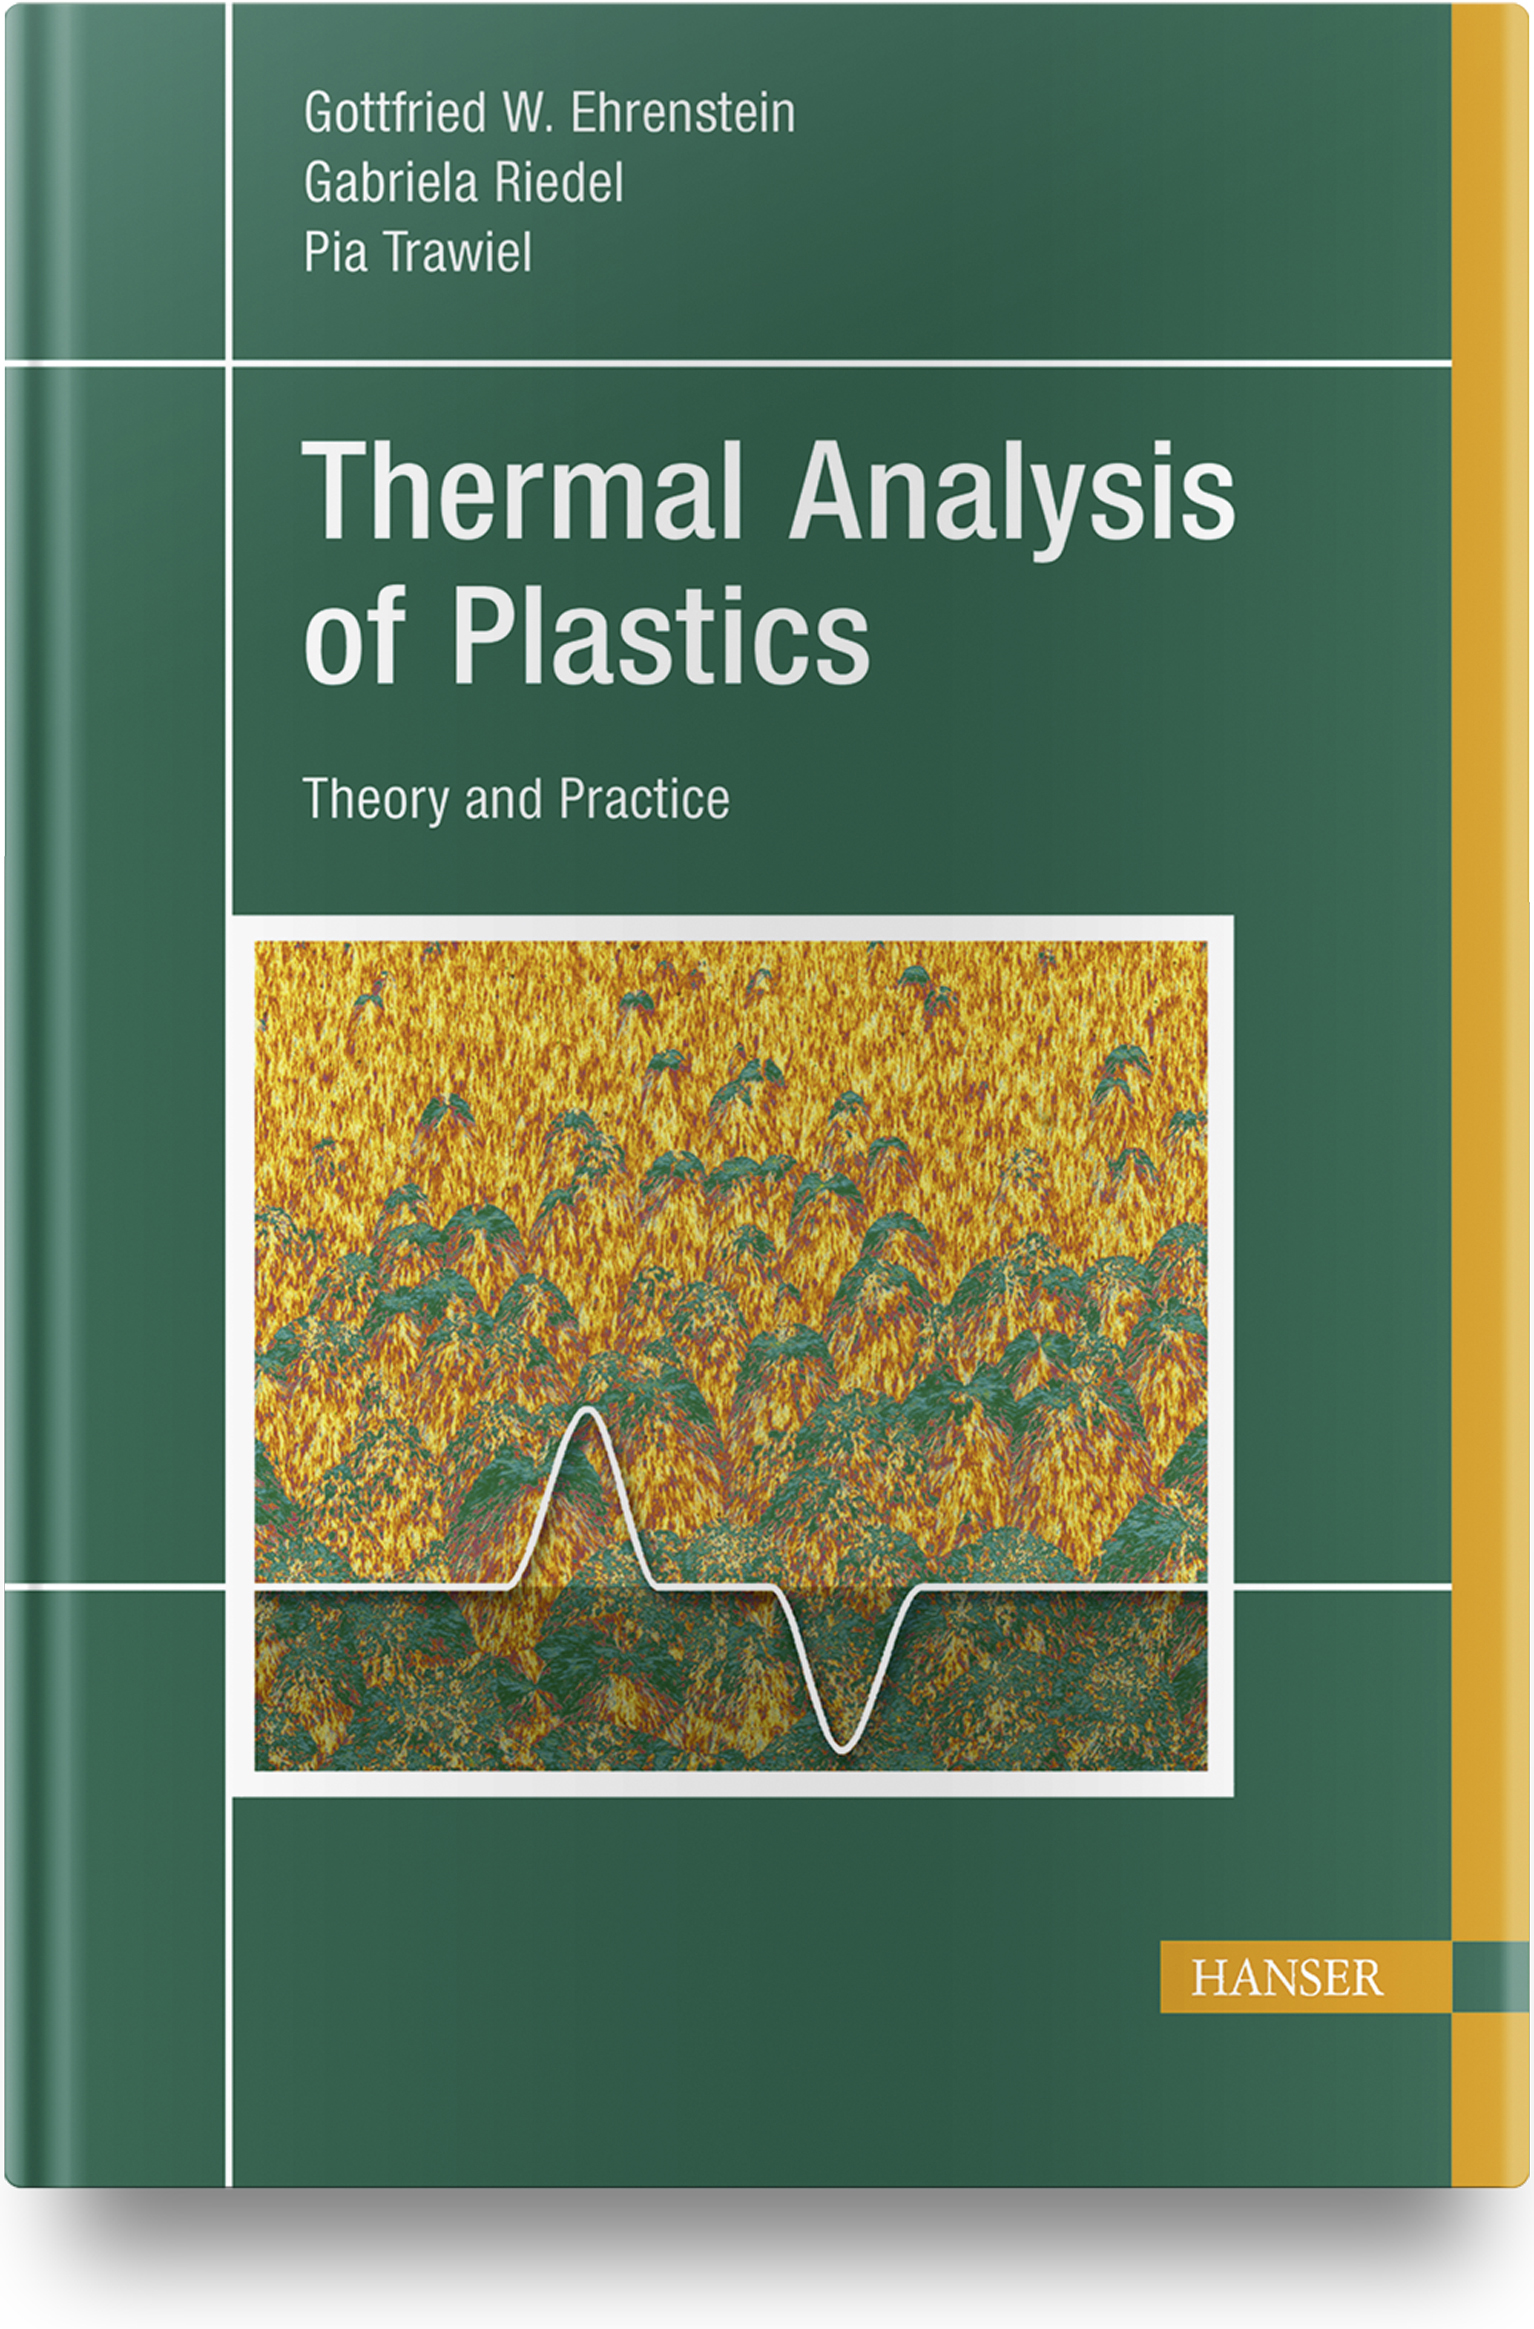 Ehrenstein, Riedel, Trawiel, Thermal Analysis of Plastics, 978-3-446-22673-9